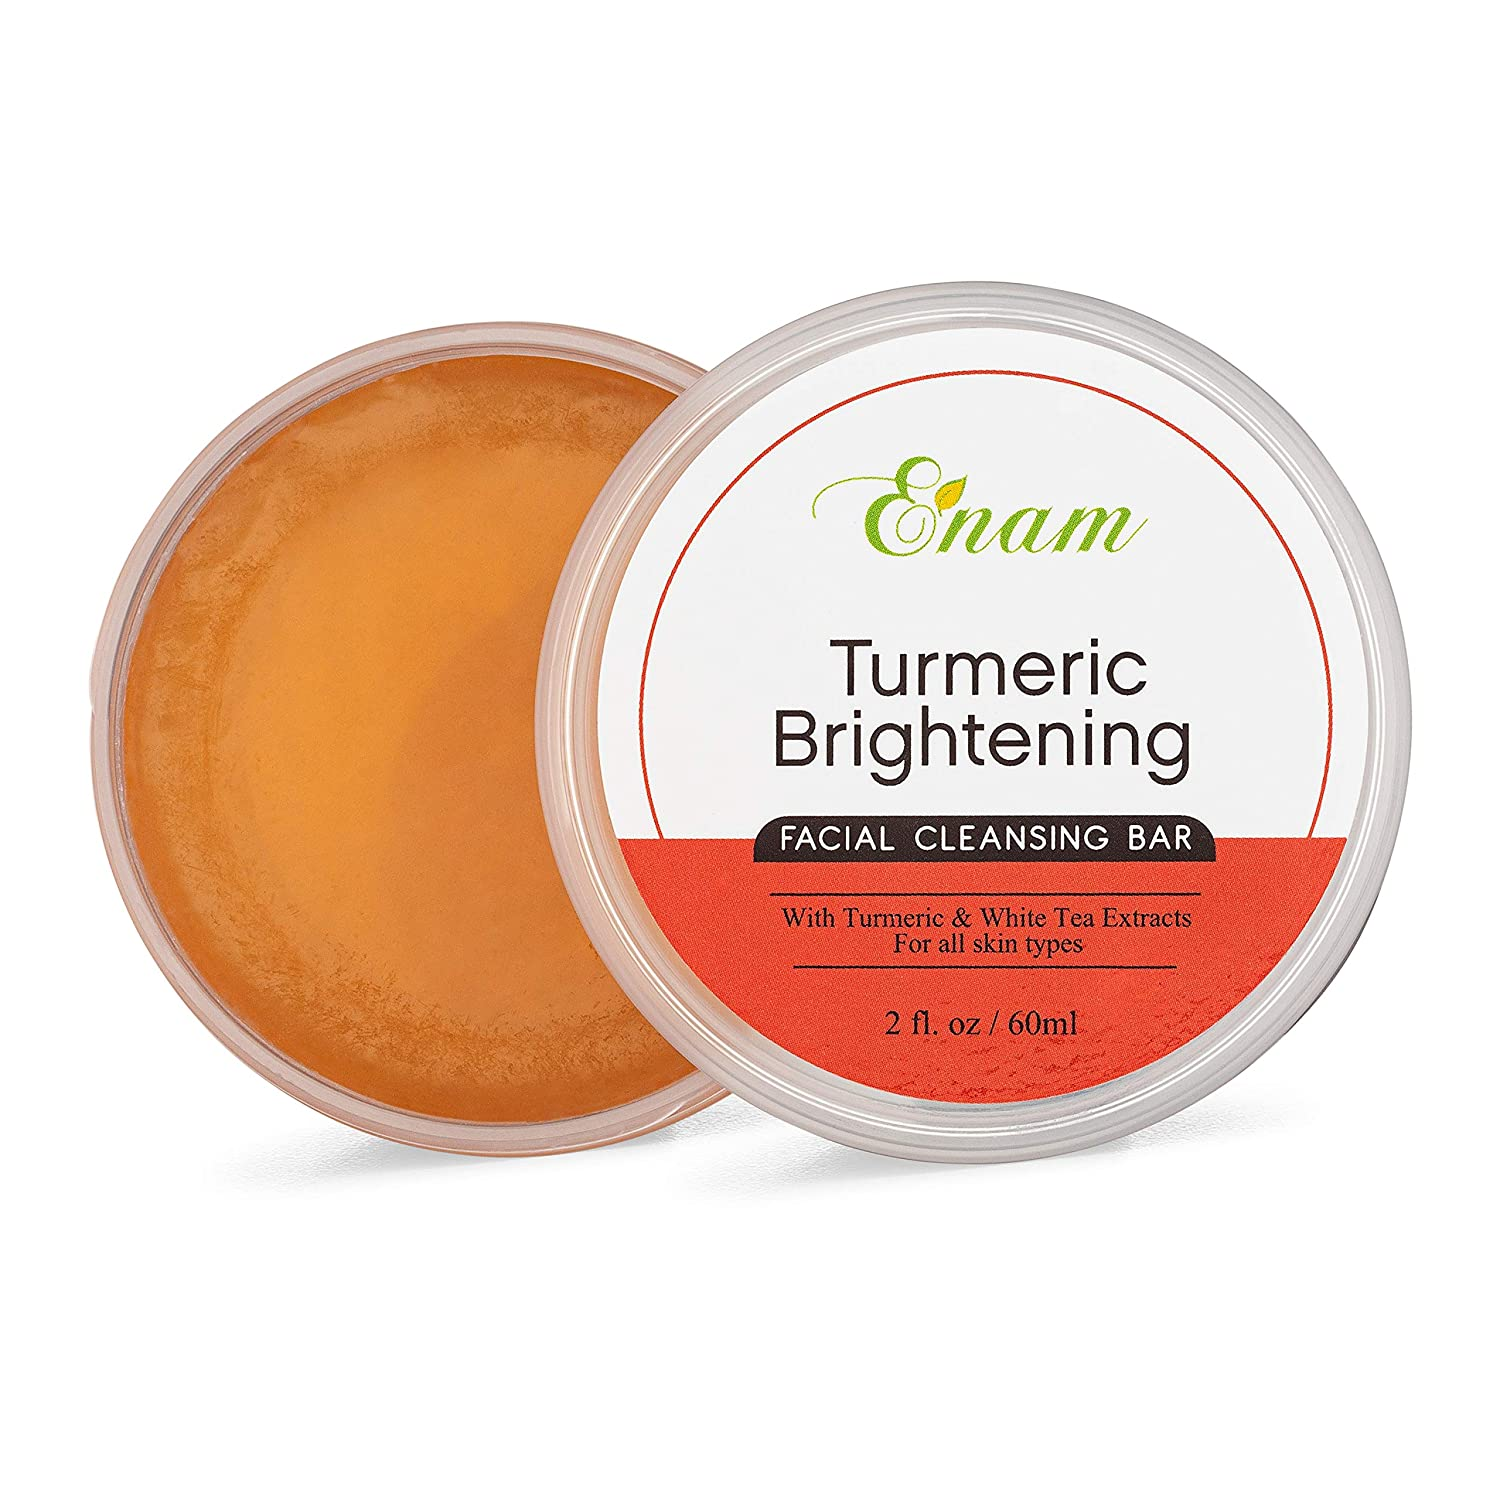 Enam Turmeric Brightening Facial Cleansing Bar - Natural Glow, Gentle Cleansing & Moisturizing Face Cleanser: Beauty